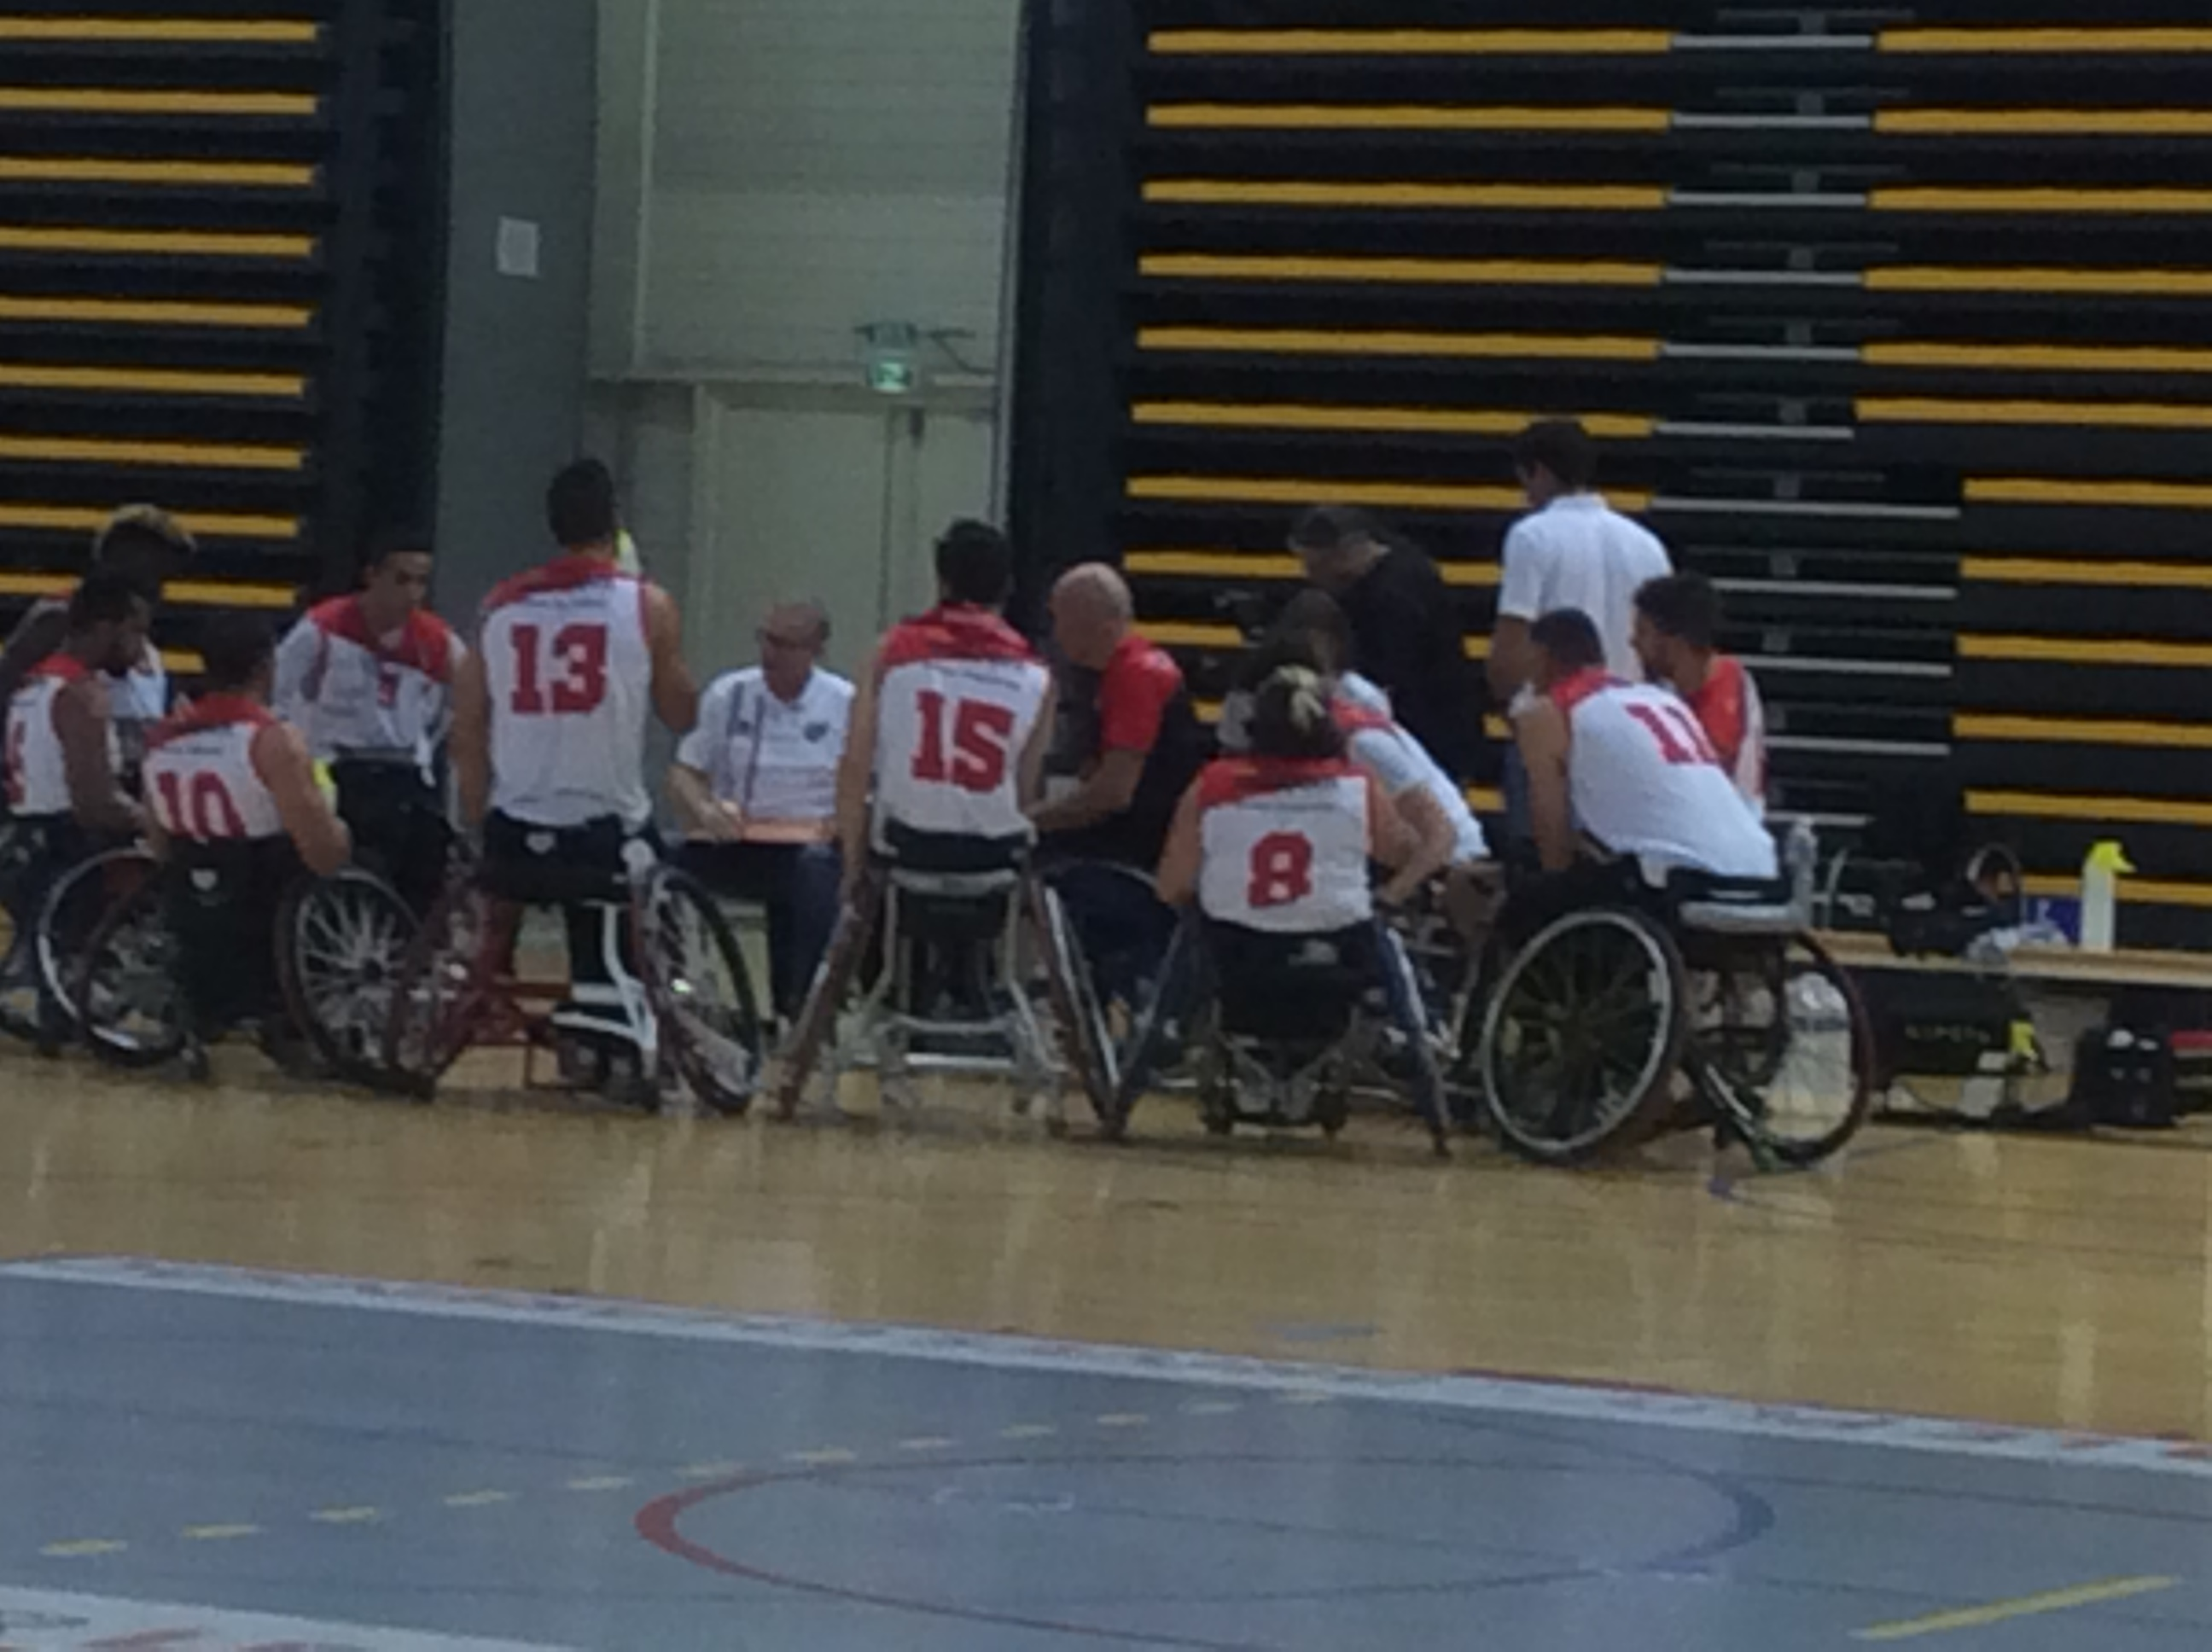 handi basket nationale 1 a les aigles du velay-toulouse 20h 161119 avant match